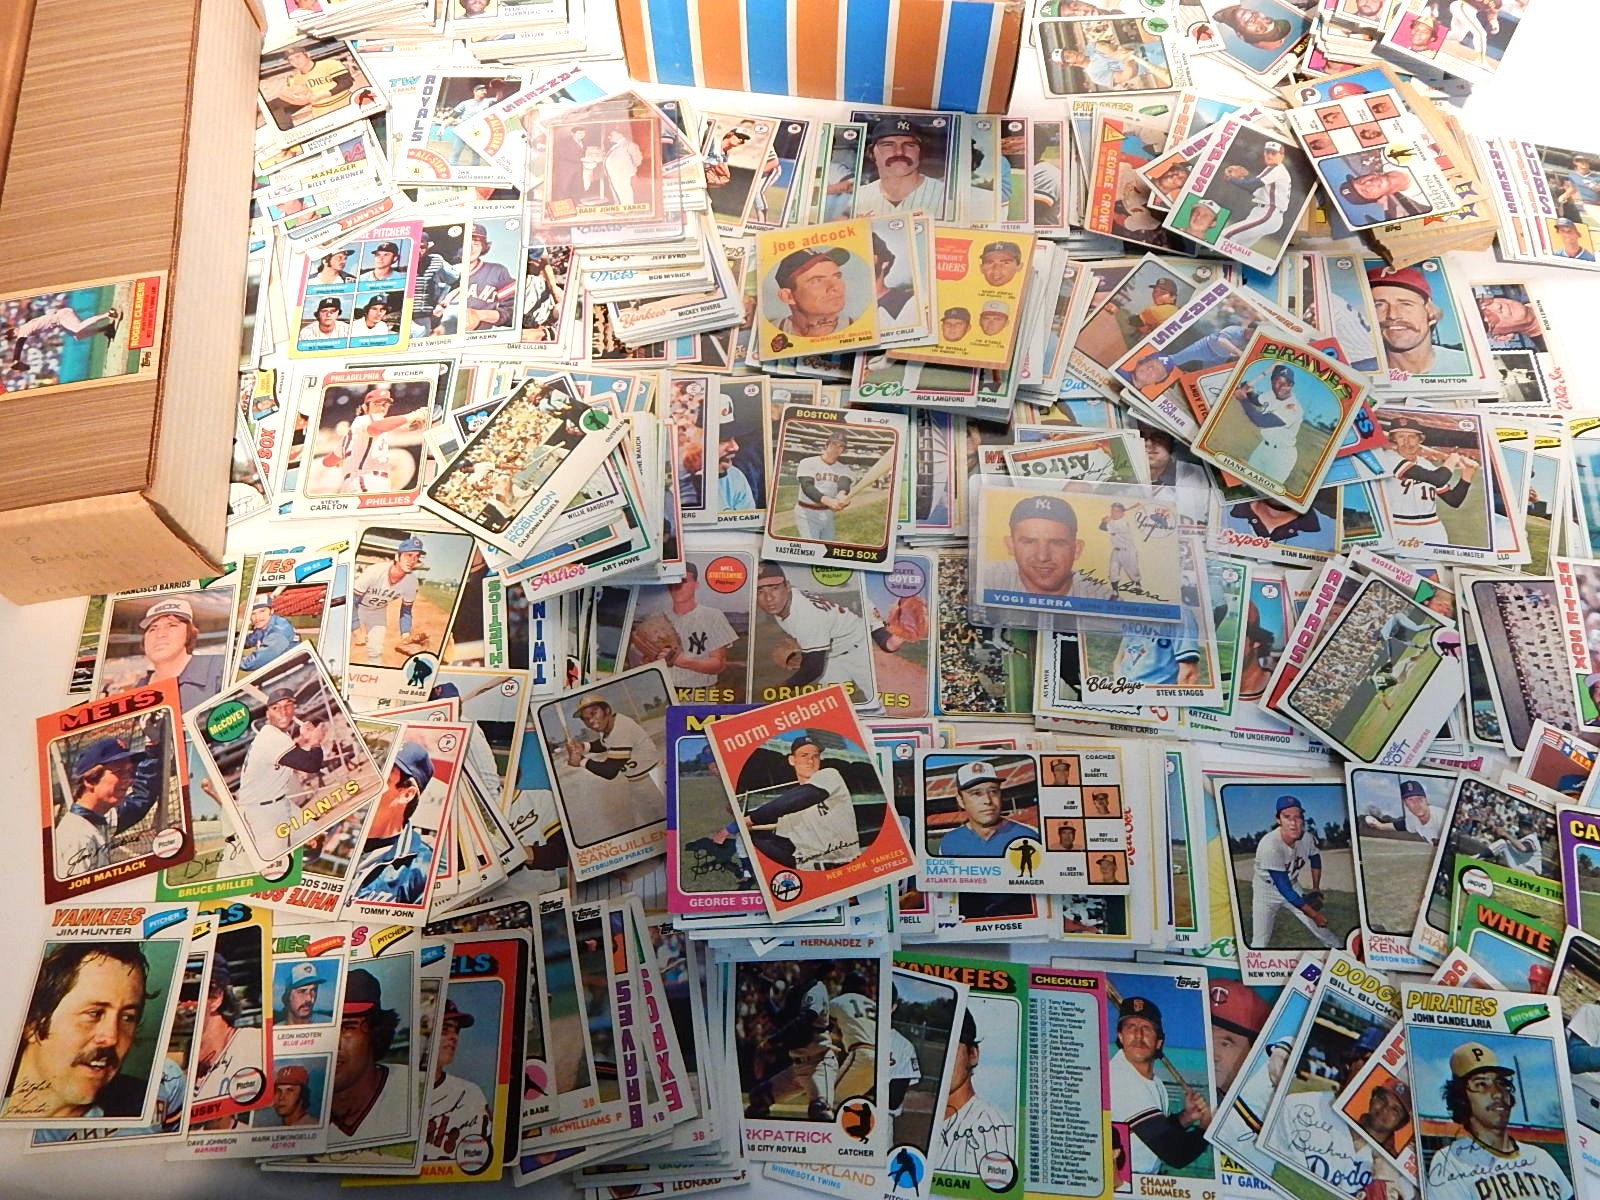 Large Topps Baseball Card Collection from 1950s through 1980s with Berra, Ruth